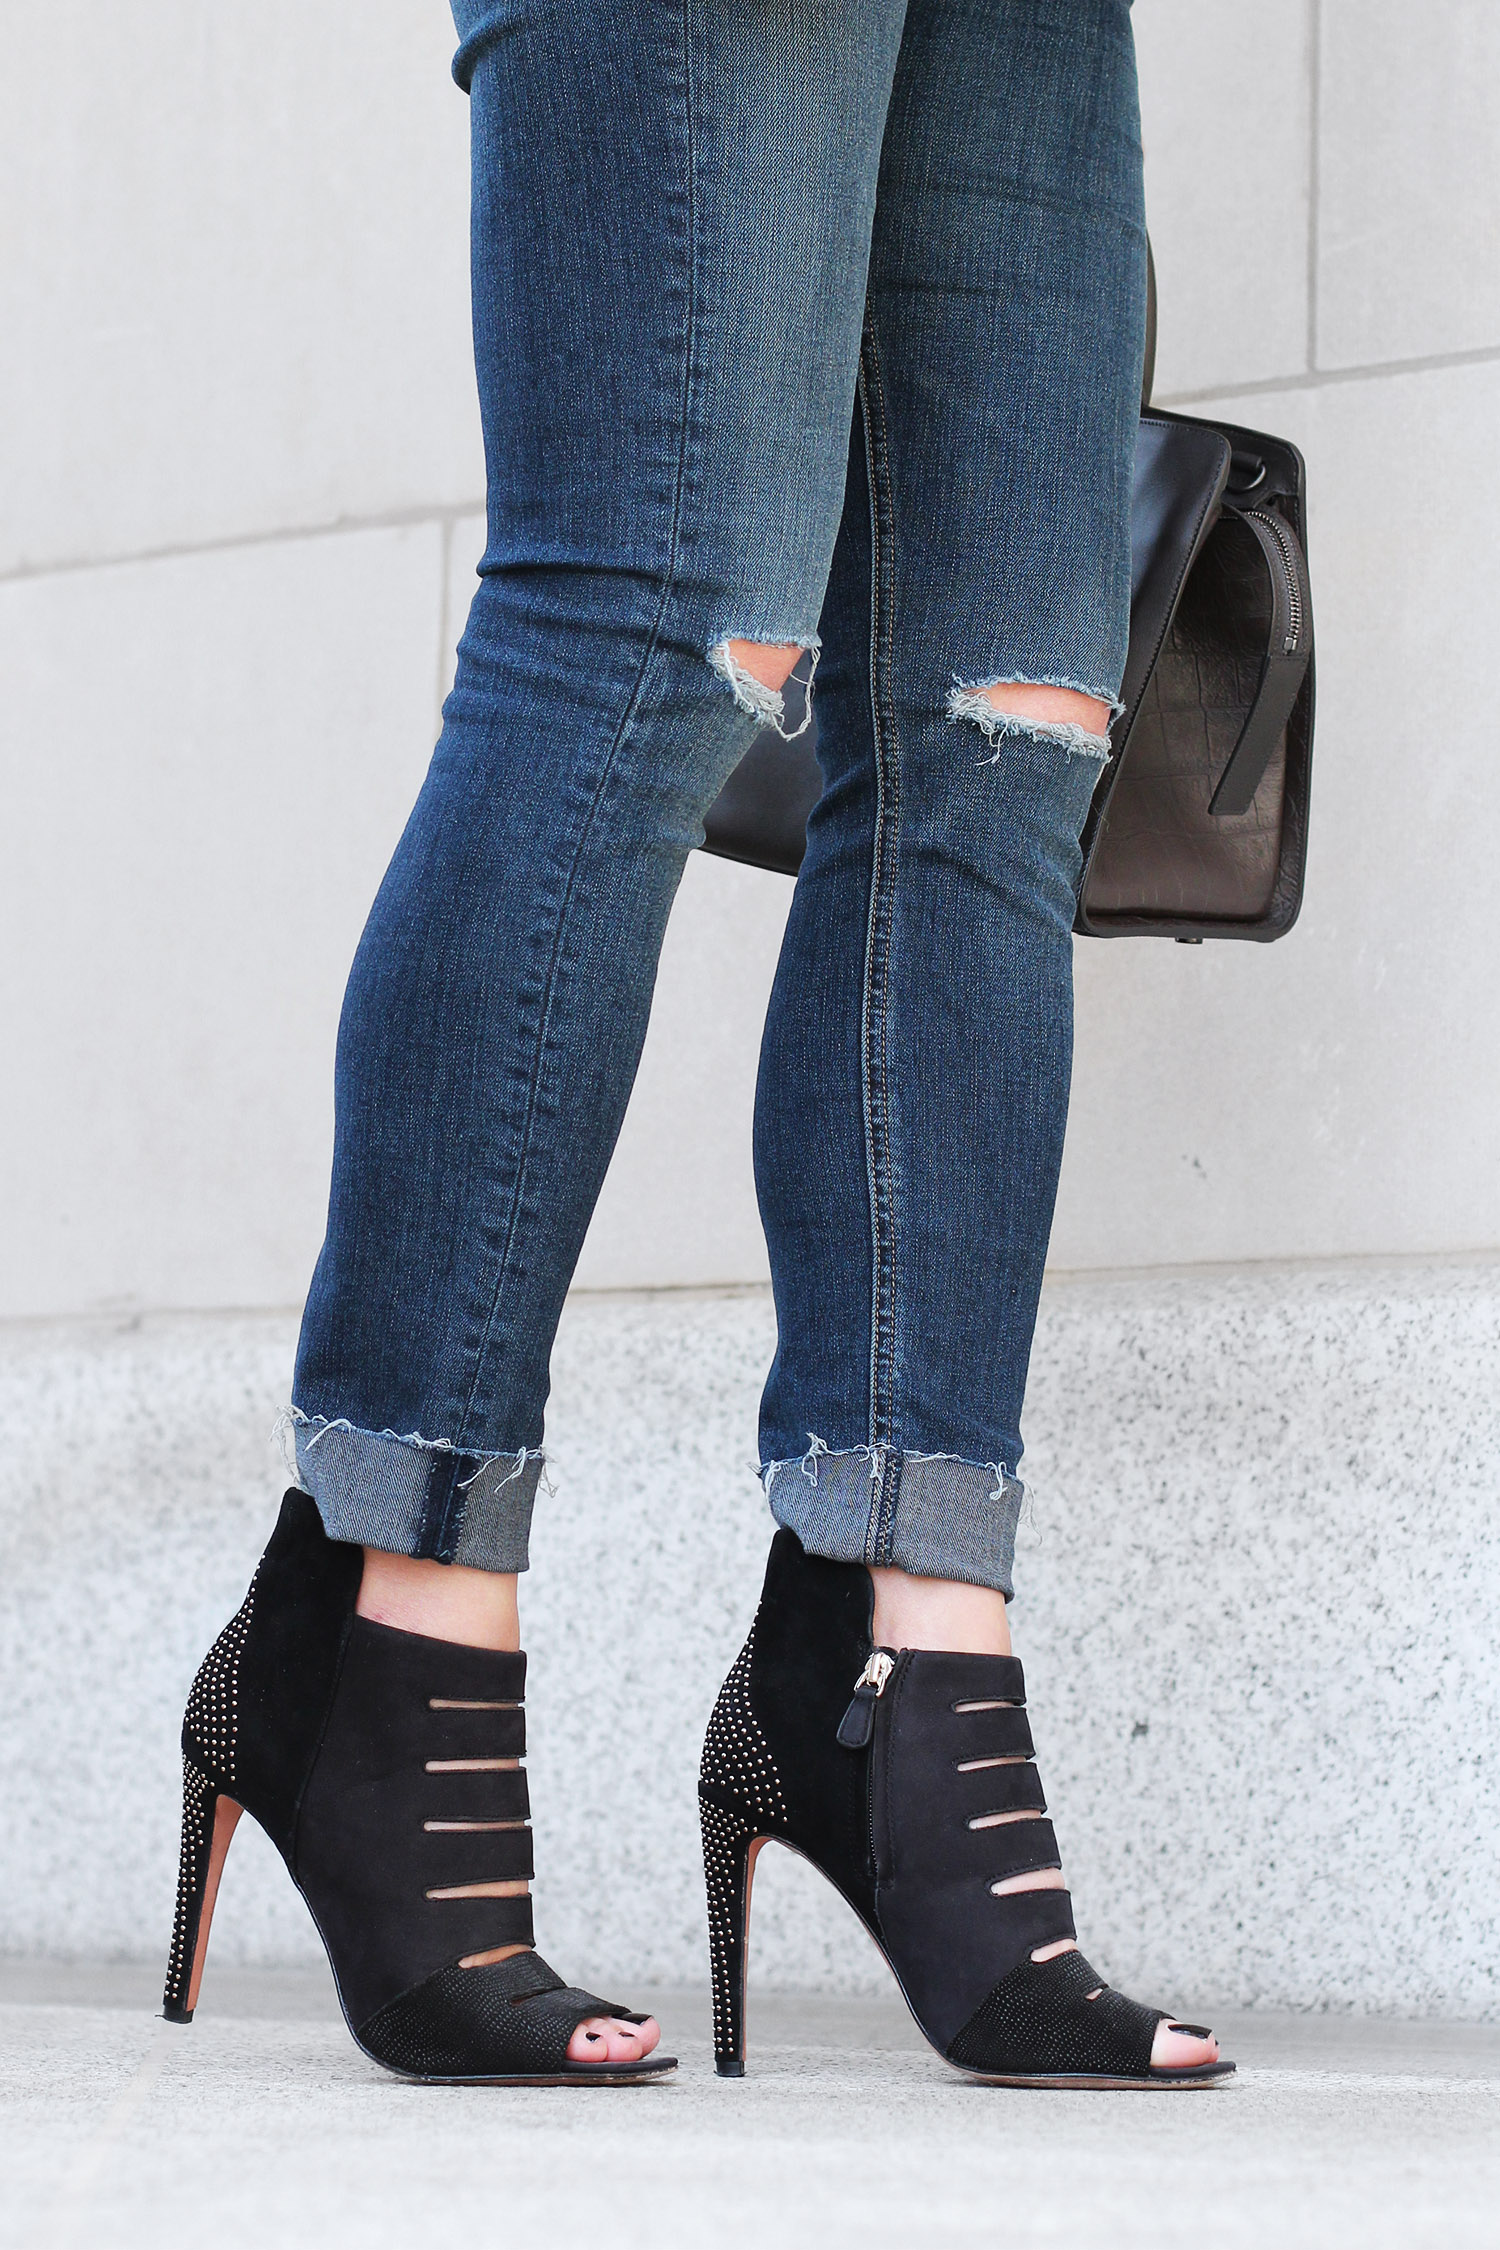 Rebecca Minkoff Ankle Booties